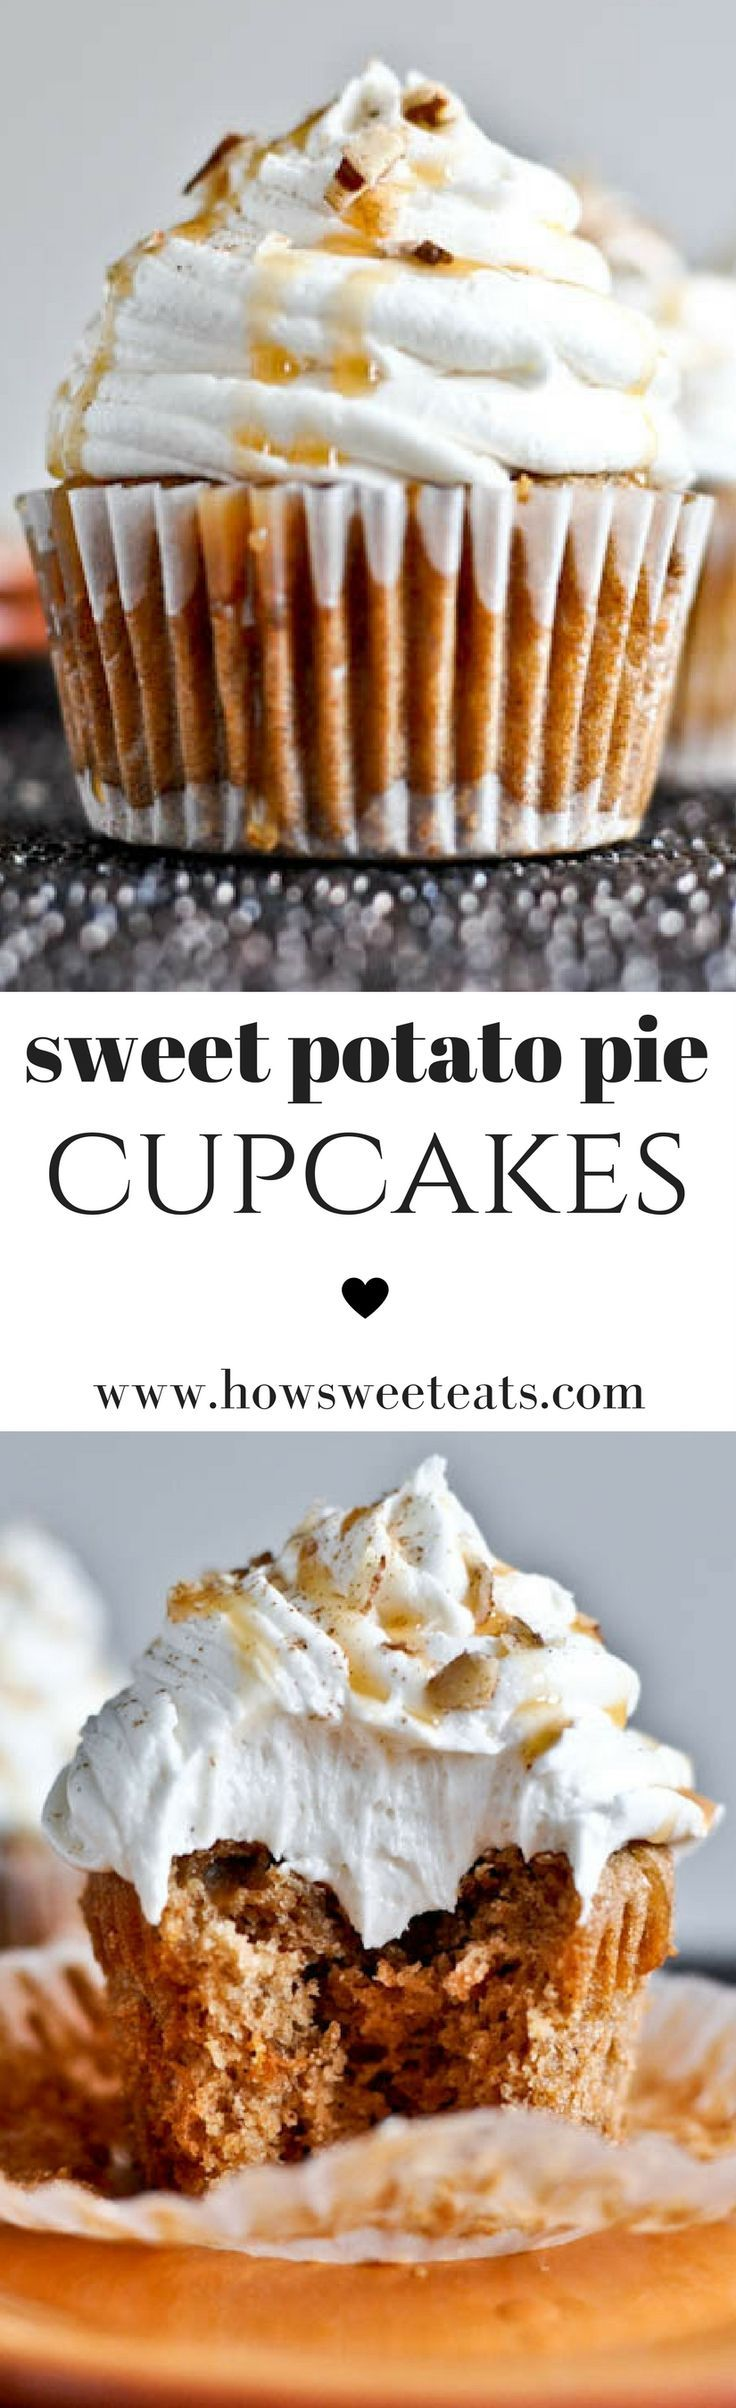 Sweet Potato Pie Cupcakes with Marshmallow Frosting!! I howsweeteats.com @howsweeteats #thanksgiving